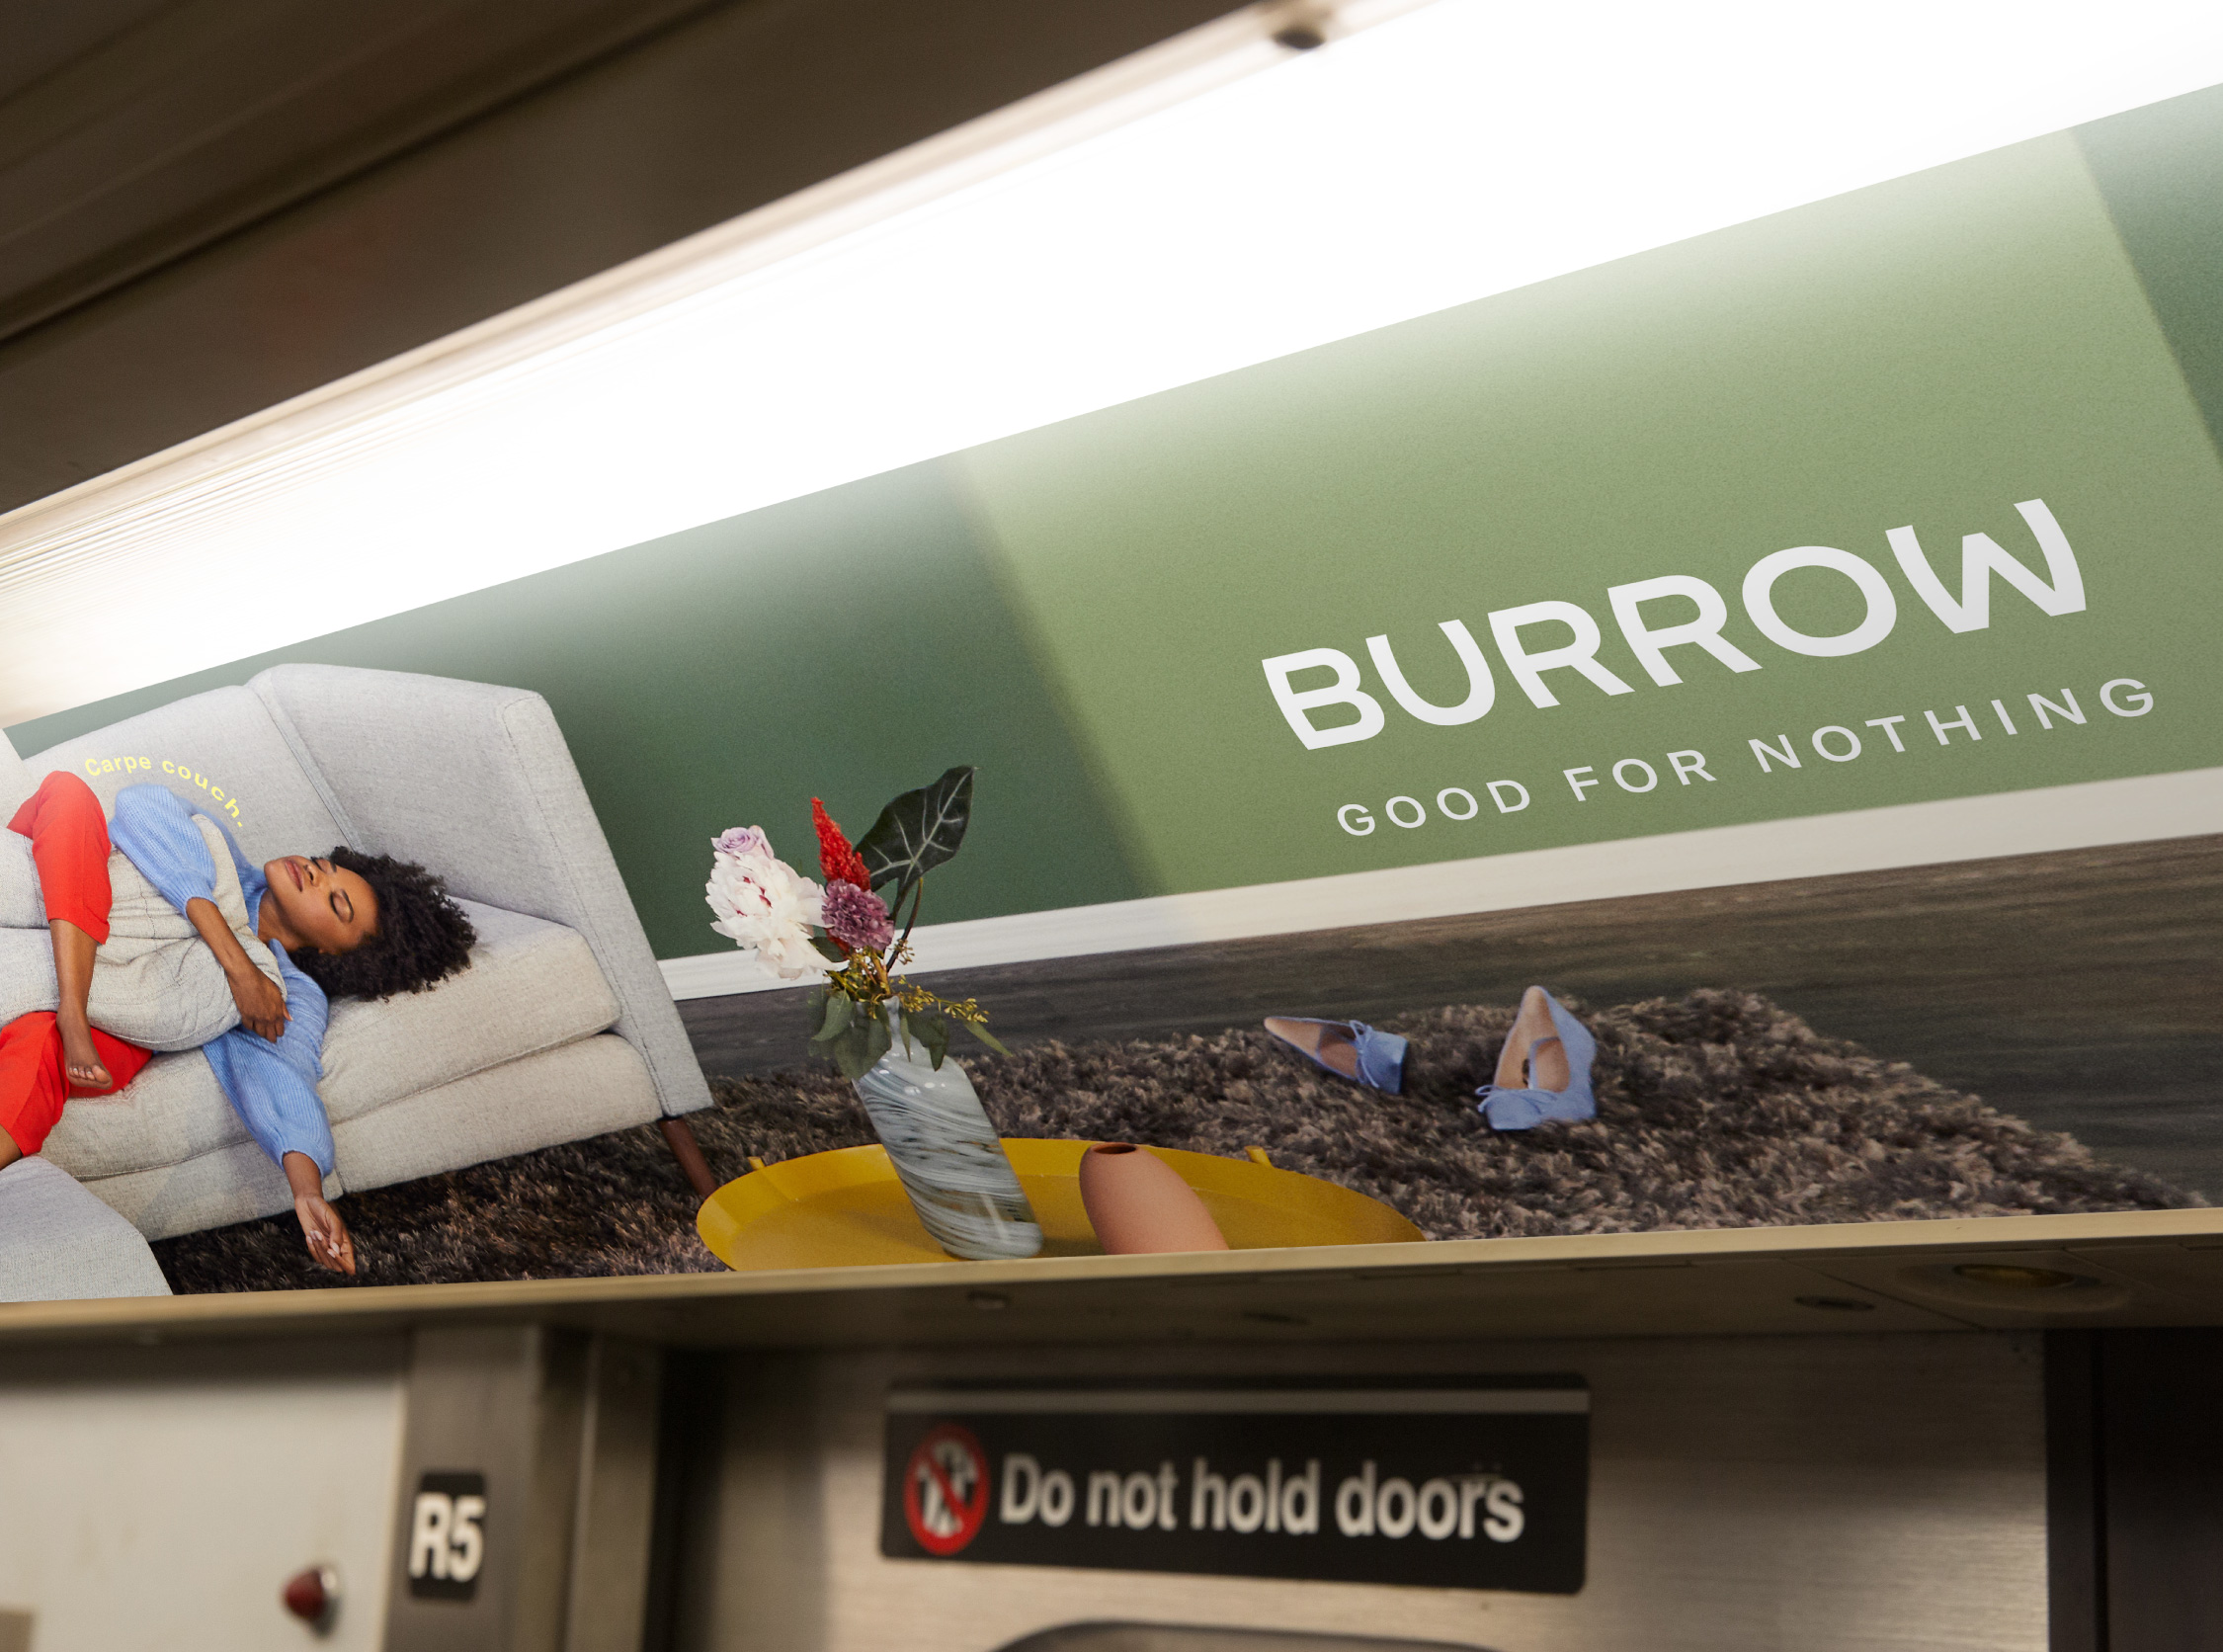 9-red-antler-burrow-good-for-nothing-campaign-subway-ads.jpg